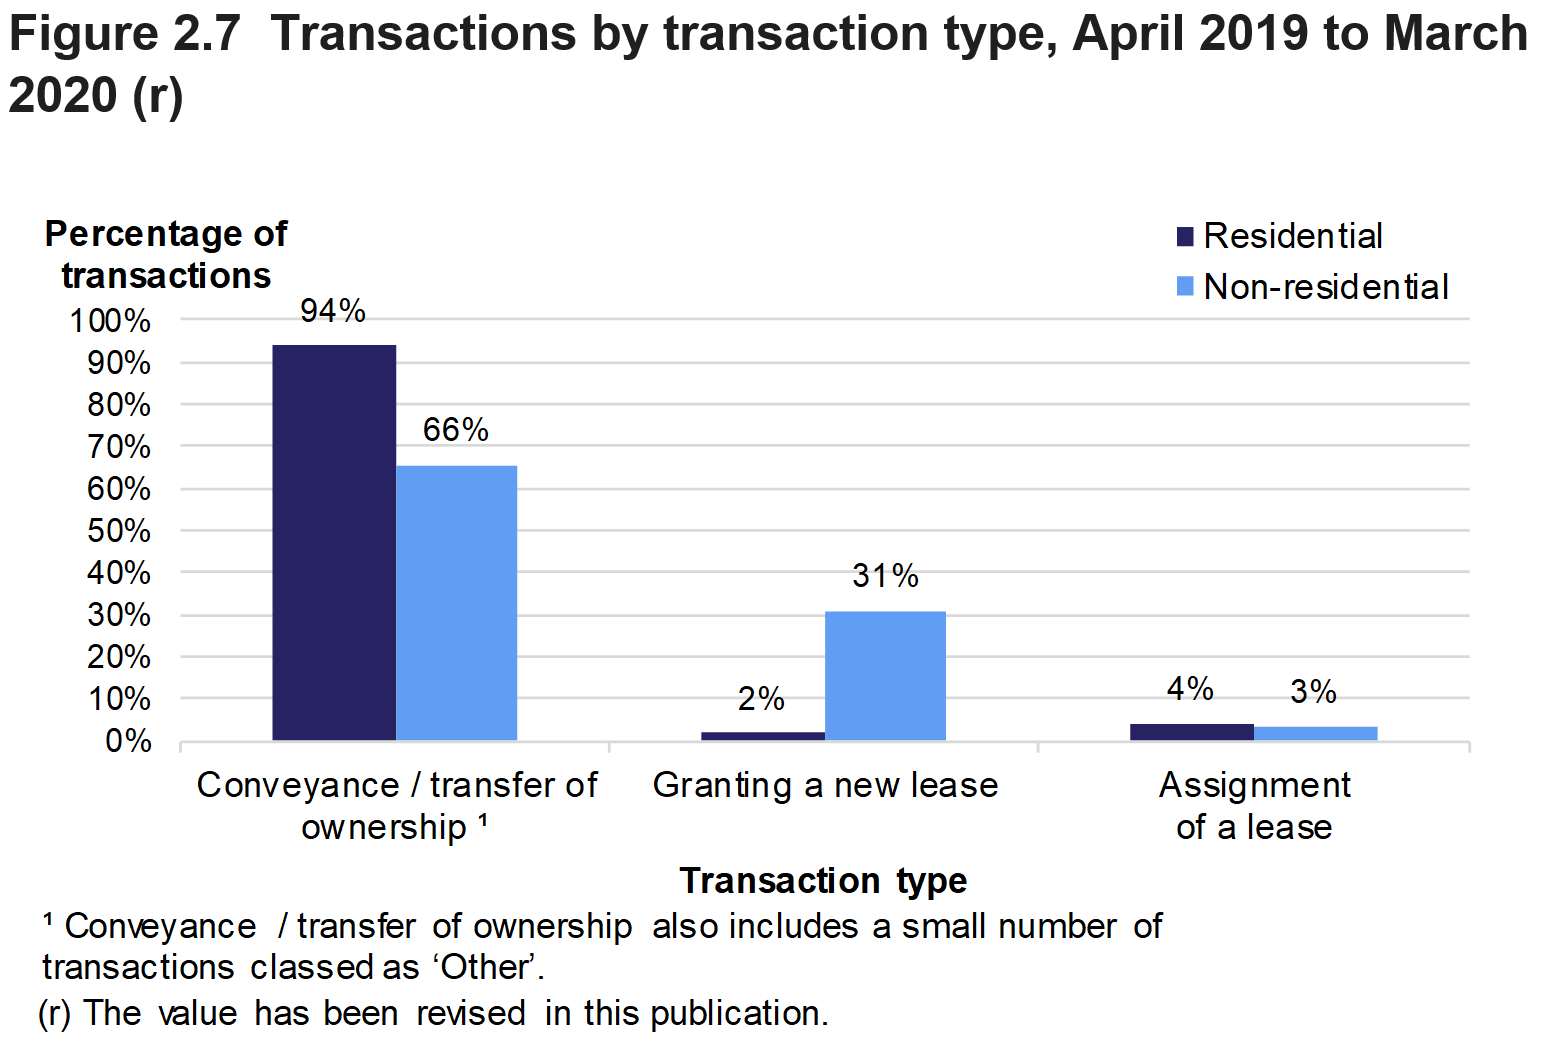 Figure 2.7 shows the percentage of transactions involving conveyance / transfer of ownership, granting of a new lease or assignment of a lease, for April 2019 to March 2020. Separate percentages are given for residential and non-residential transactions.